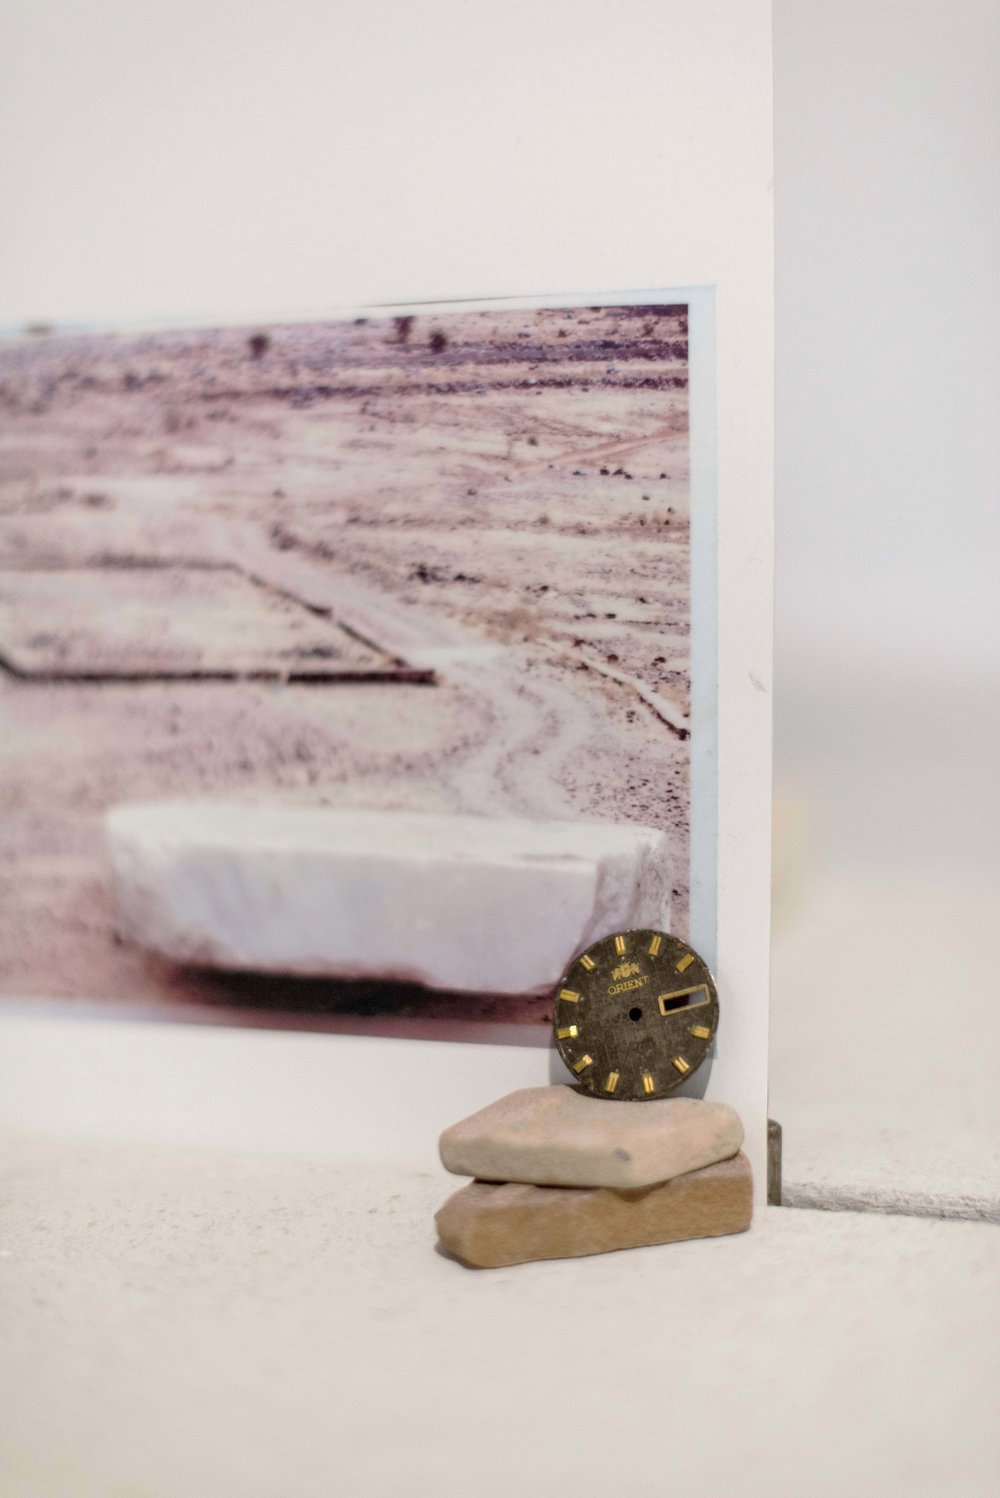 Time in stone (Orient) , 2018  Detail: watch dial, sea tiles, plaster board and inkjet print on paper